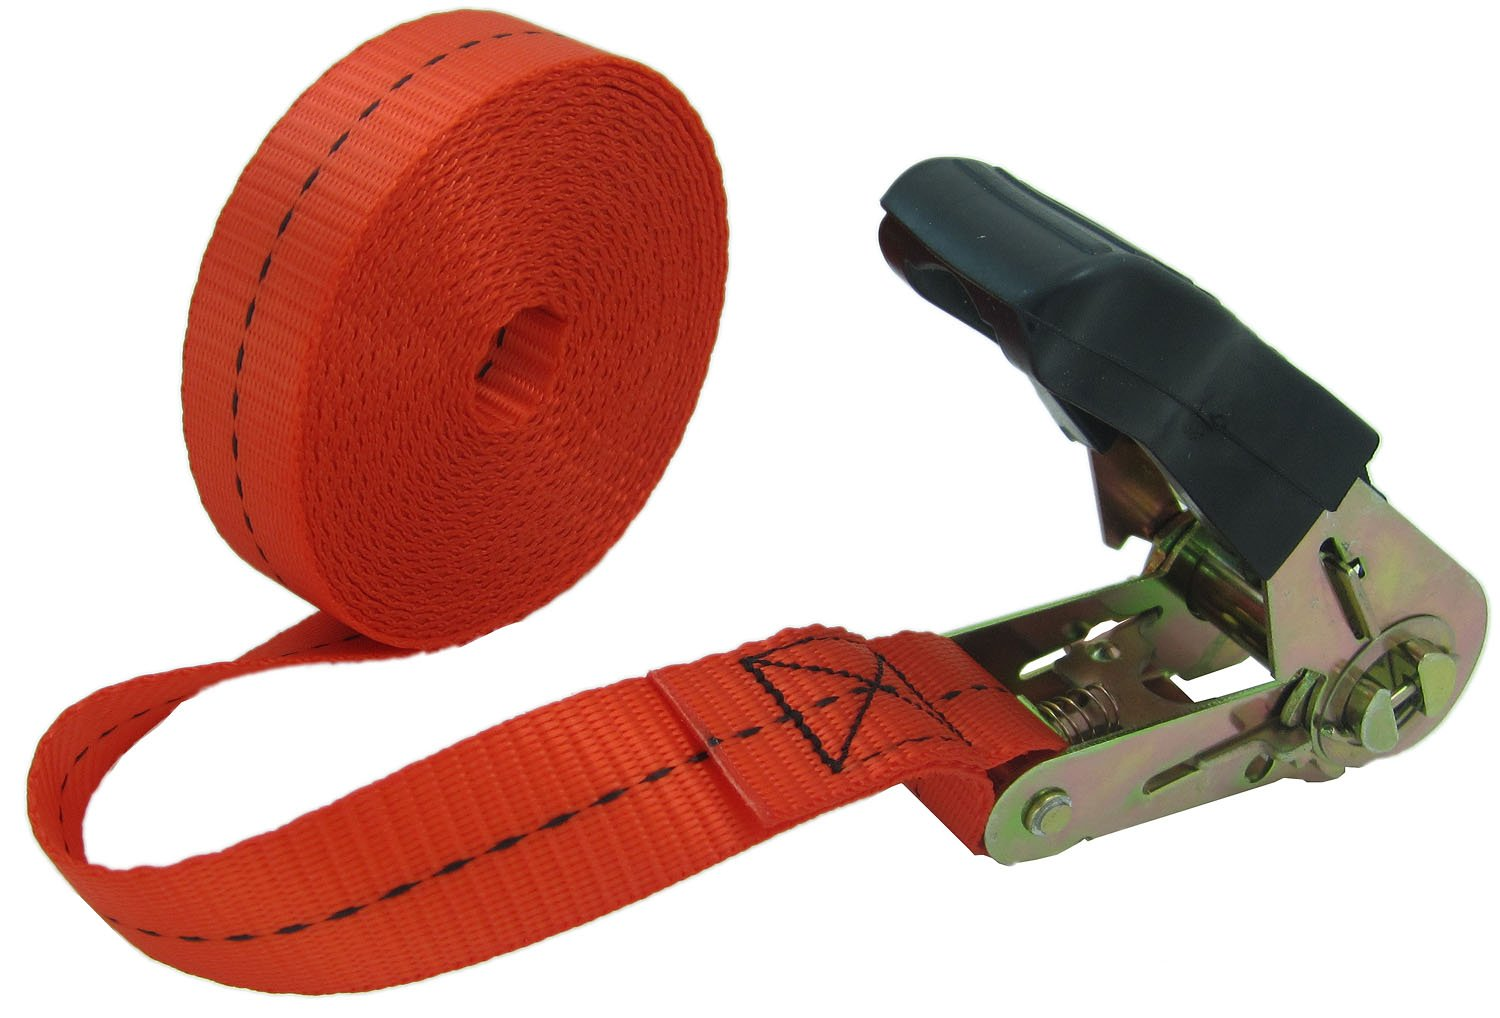 WINGONEER Endless Loop Ratchet Tie-Down Standard Duty Ratchet Endless No Hooks/Lashing, 1,700 lbs.196inch - Red